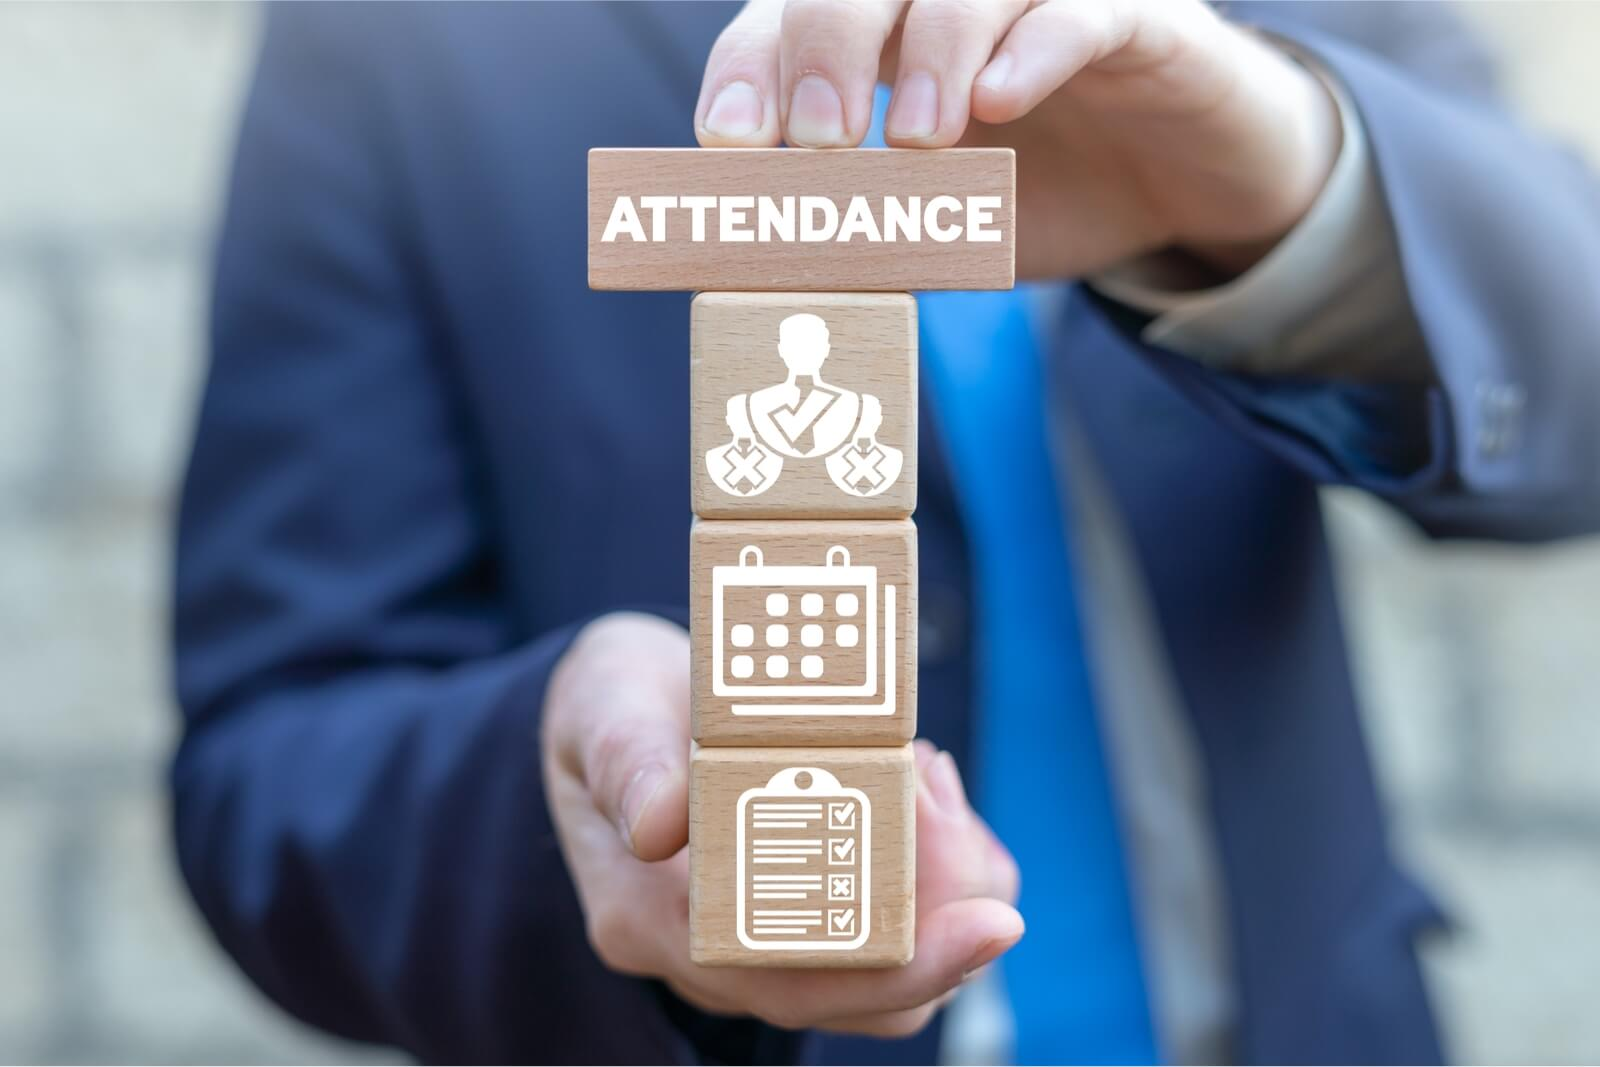 A person is holding wooden cubes that feature attendance tracking